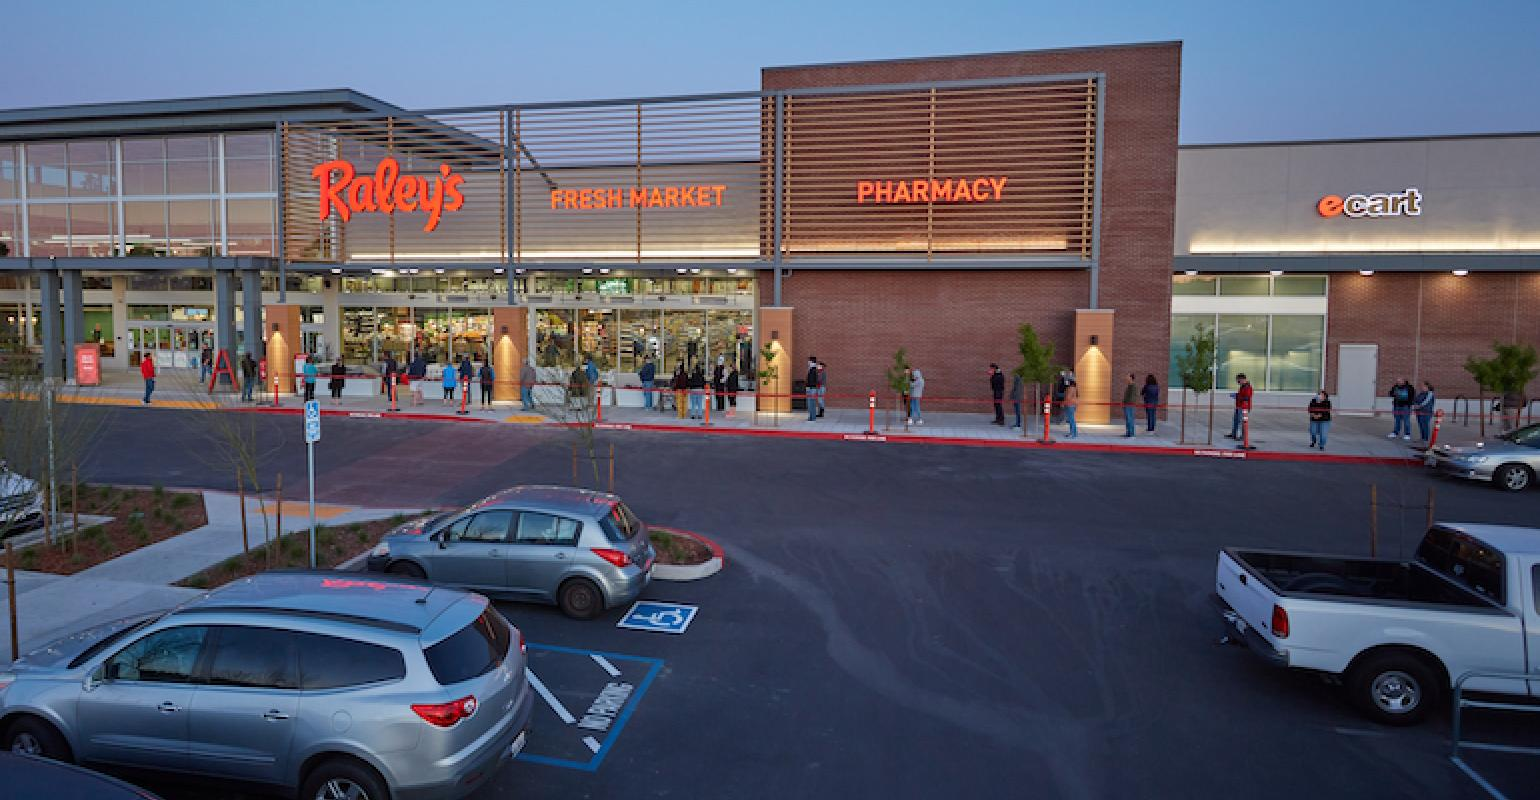 Is Raleys Nob Hill Open Christmas 2020 Raley's unveils new flagship store in Sacramento | Supermarket News